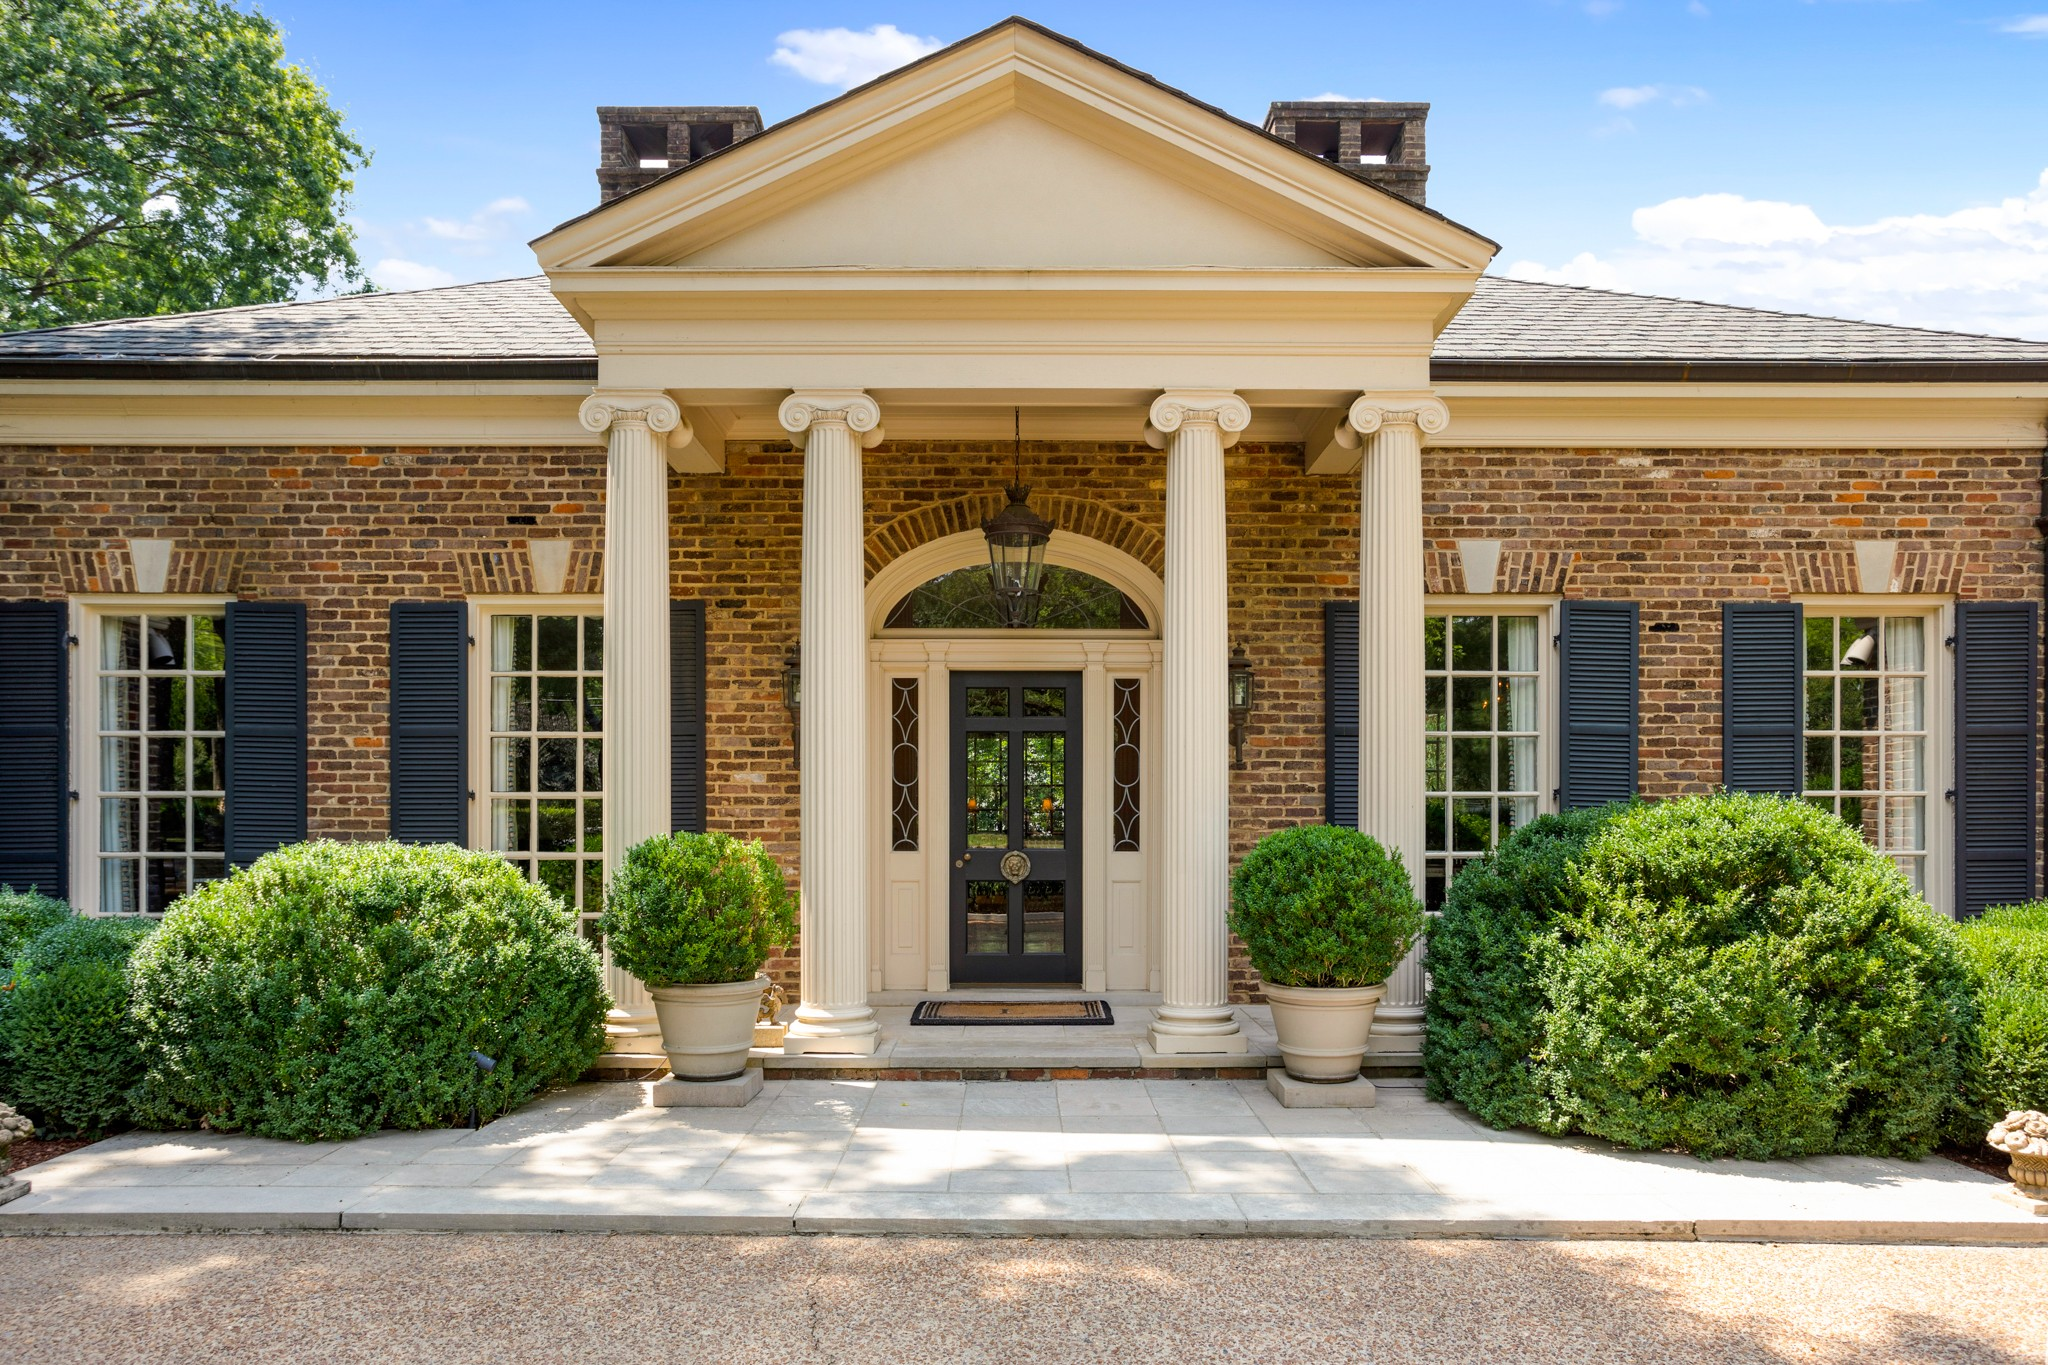 1011 Belle Meade Blvd Property Photo - Nashville, TN real estate listing